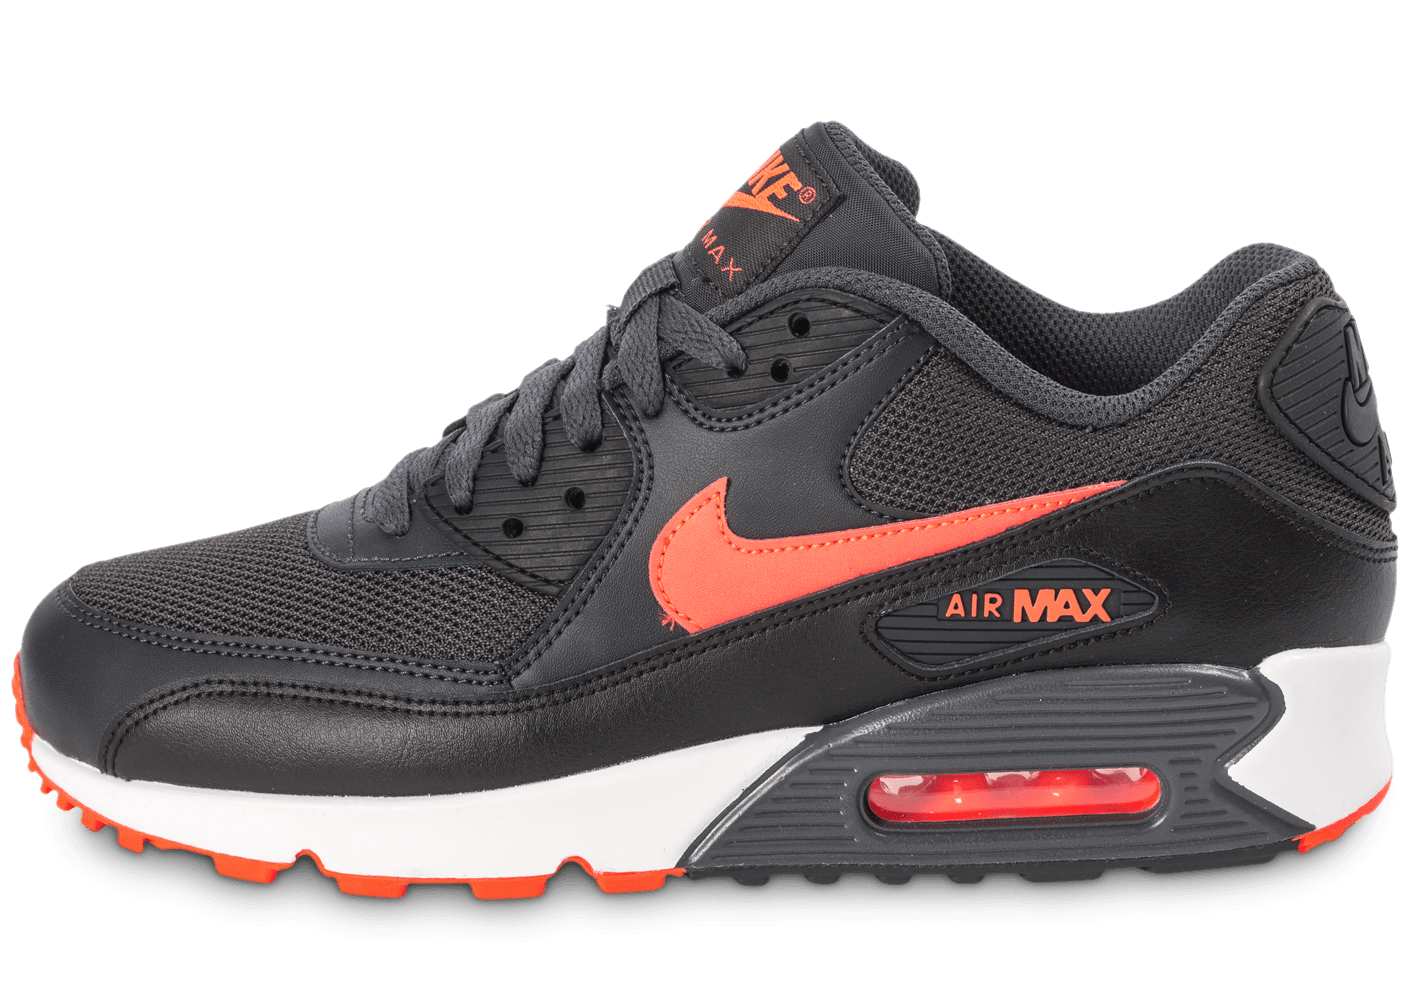 basket nike air max 90 femme. Black Bedroom Furniture Sets. Home Design Ideas